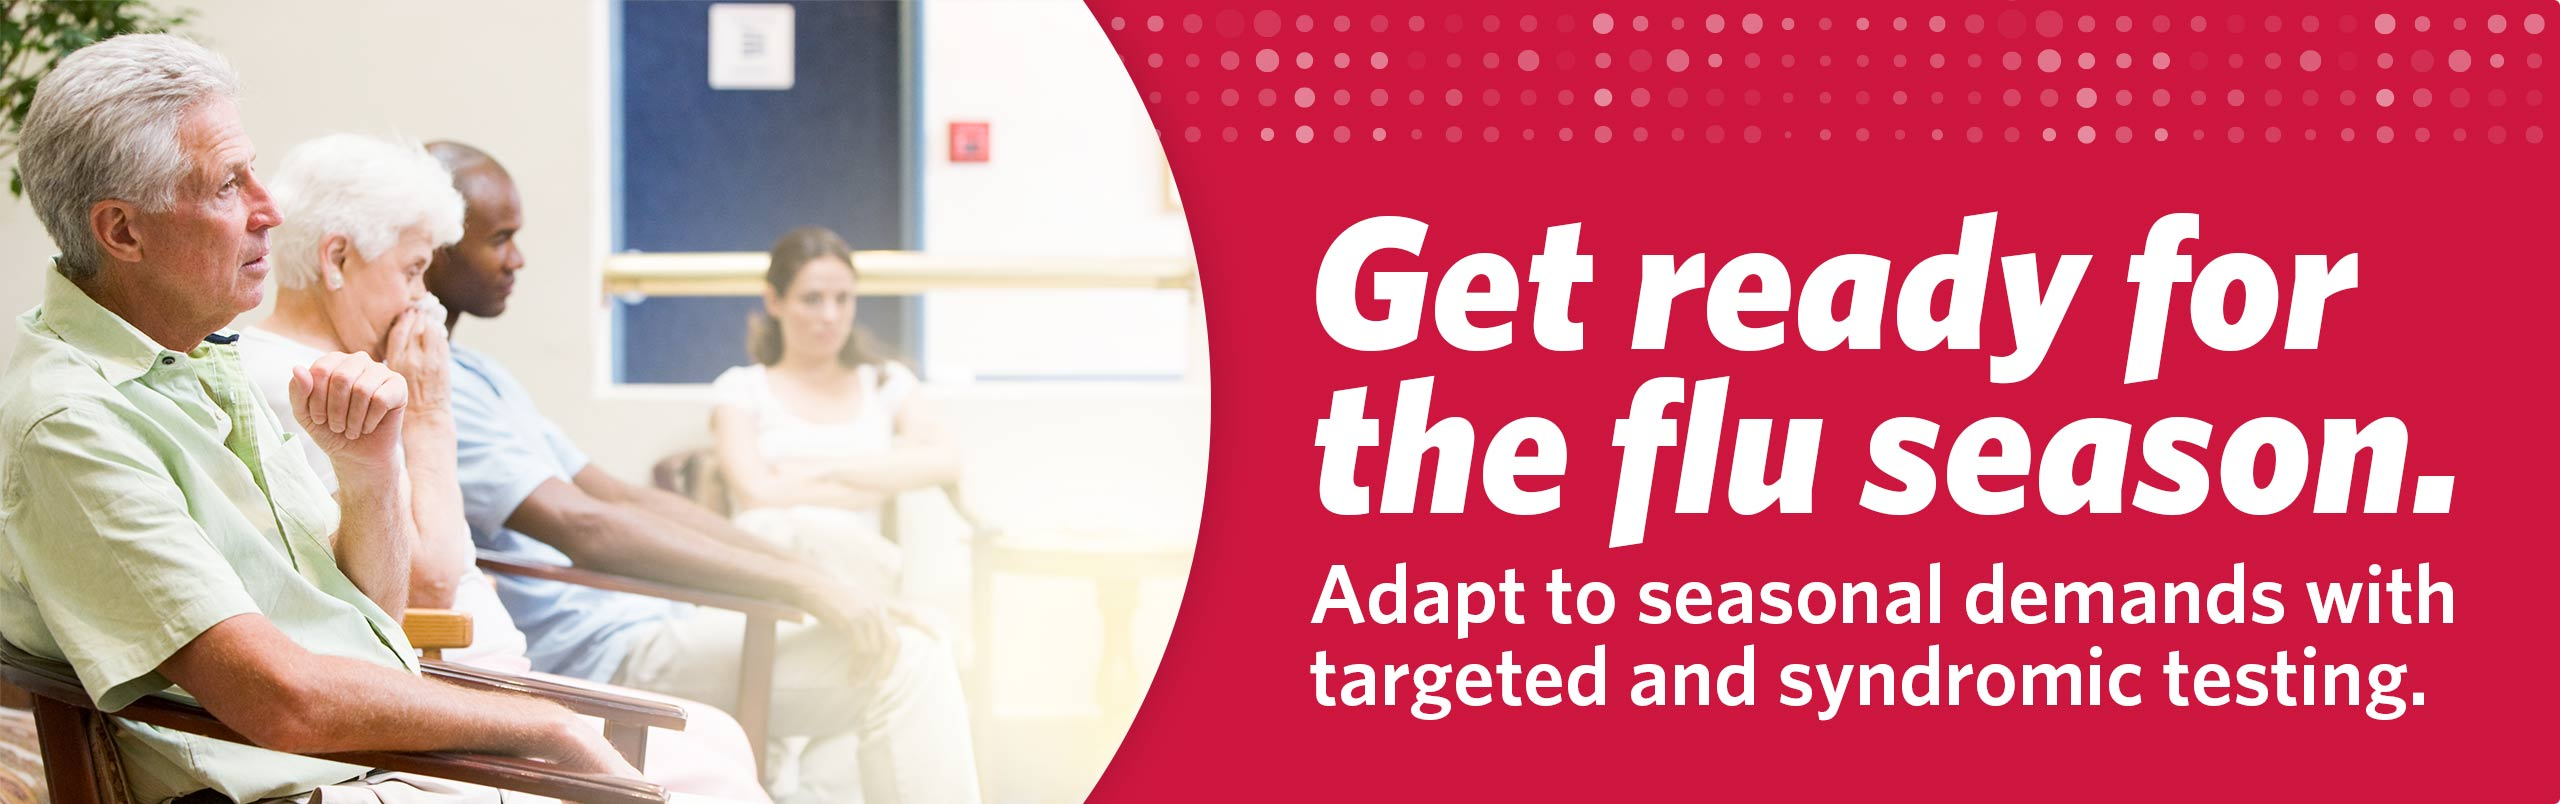 Get ready for the flu season. Adapt to seasonal demands with targeted and syndromic testing.